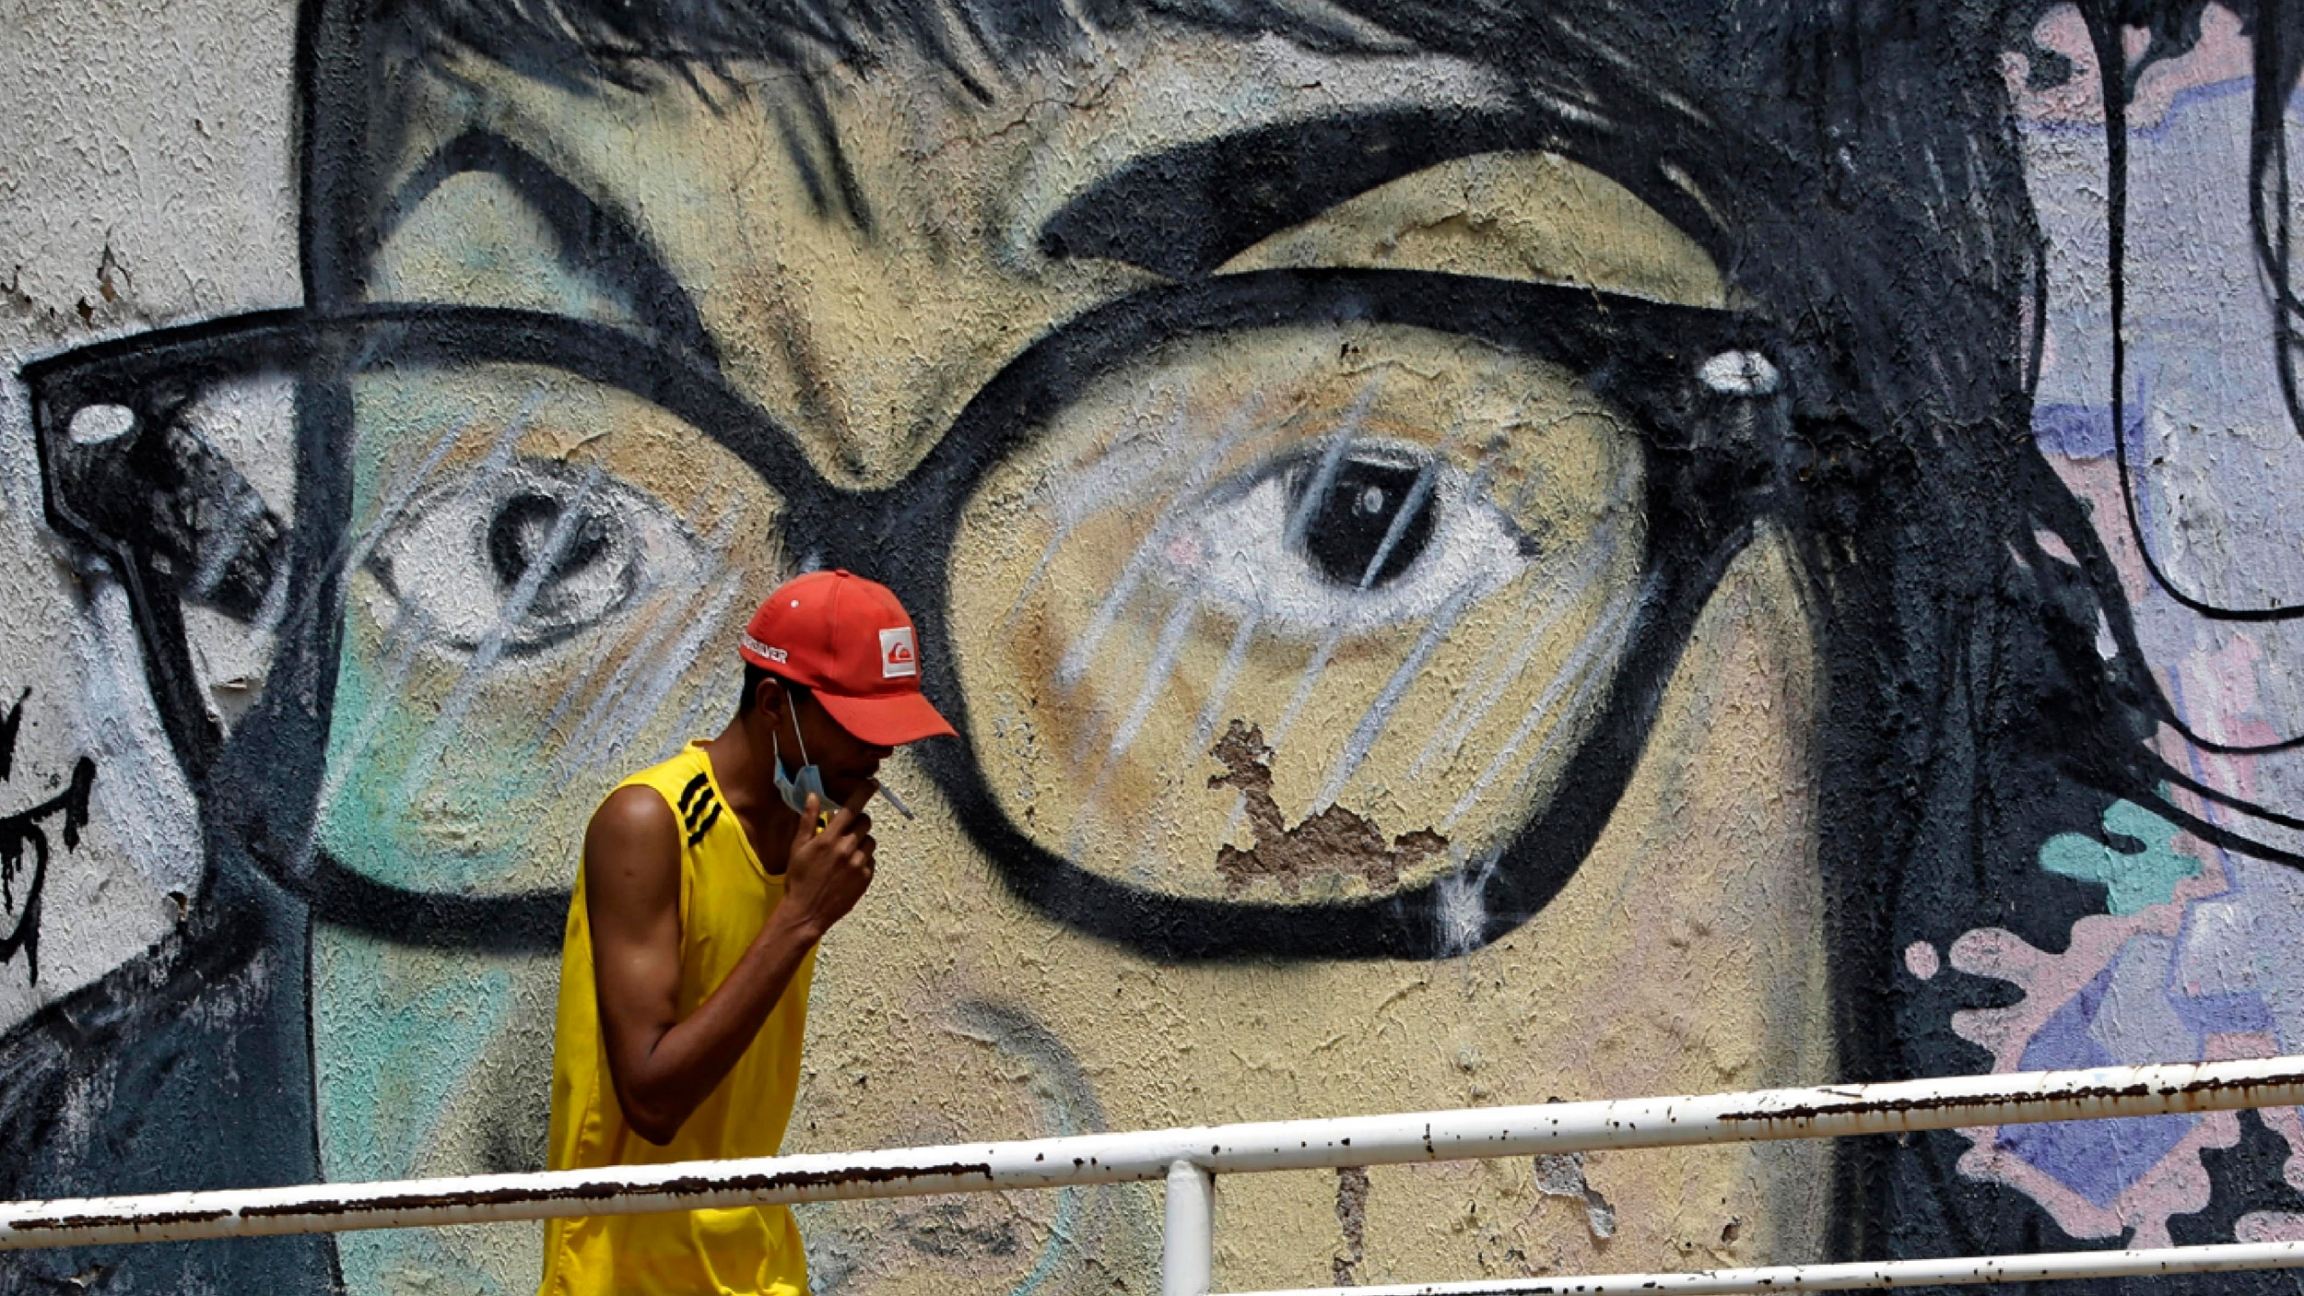 A man wearing a yellow sleave-less shirt and red hat is shown smoking a cigarette and walking past a large mural of someone wearing glasses.